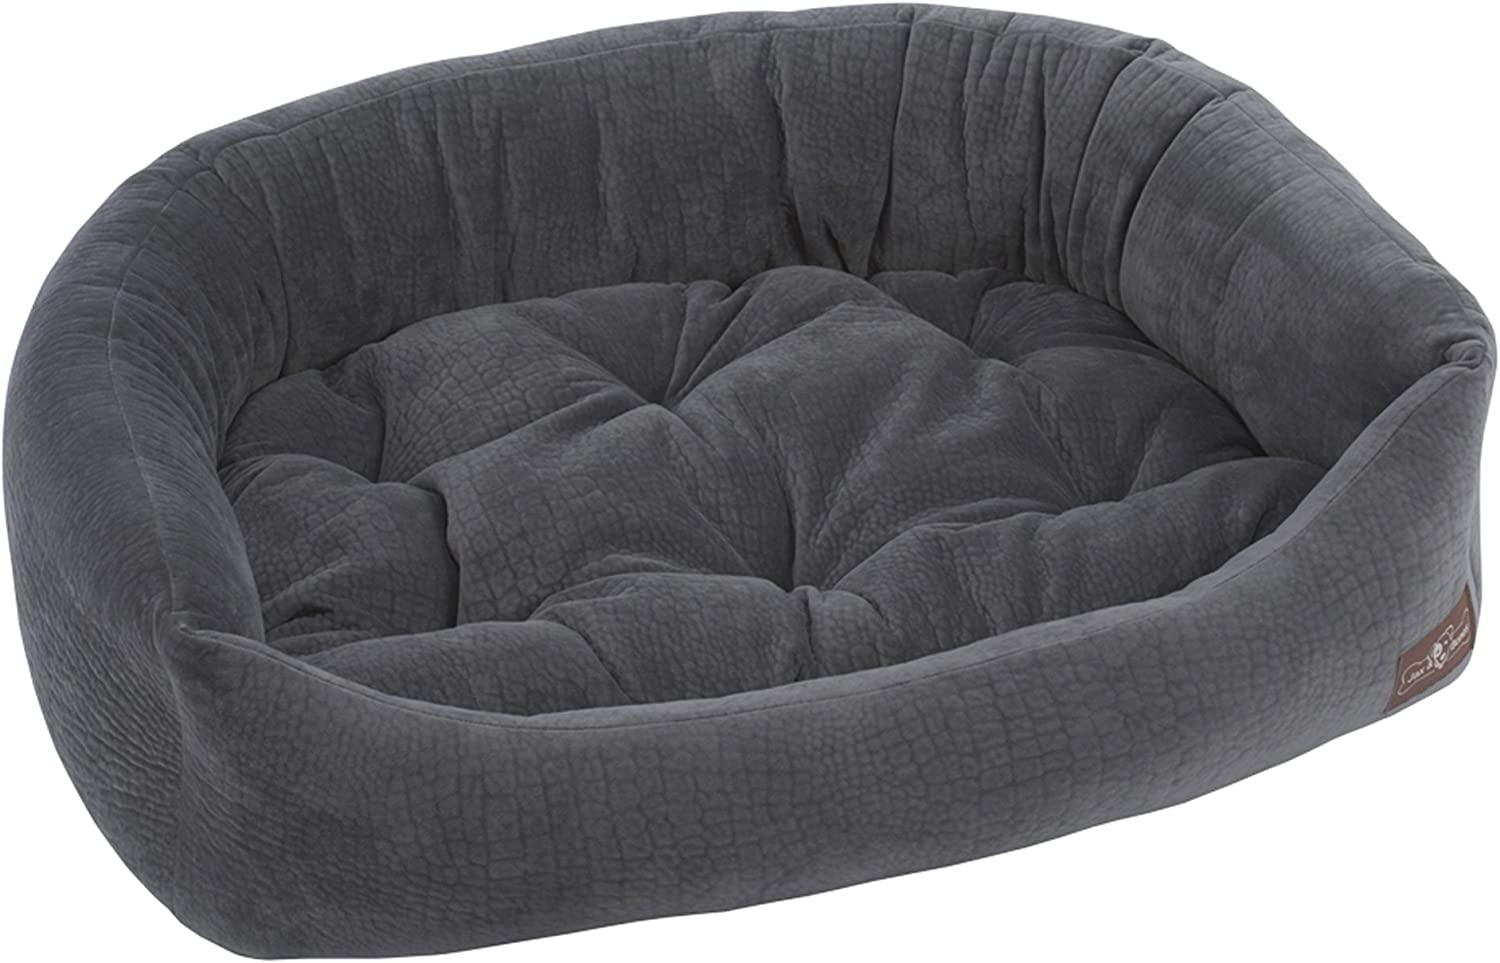 Jax and Bones Ripple Velour Napper Dog Bed